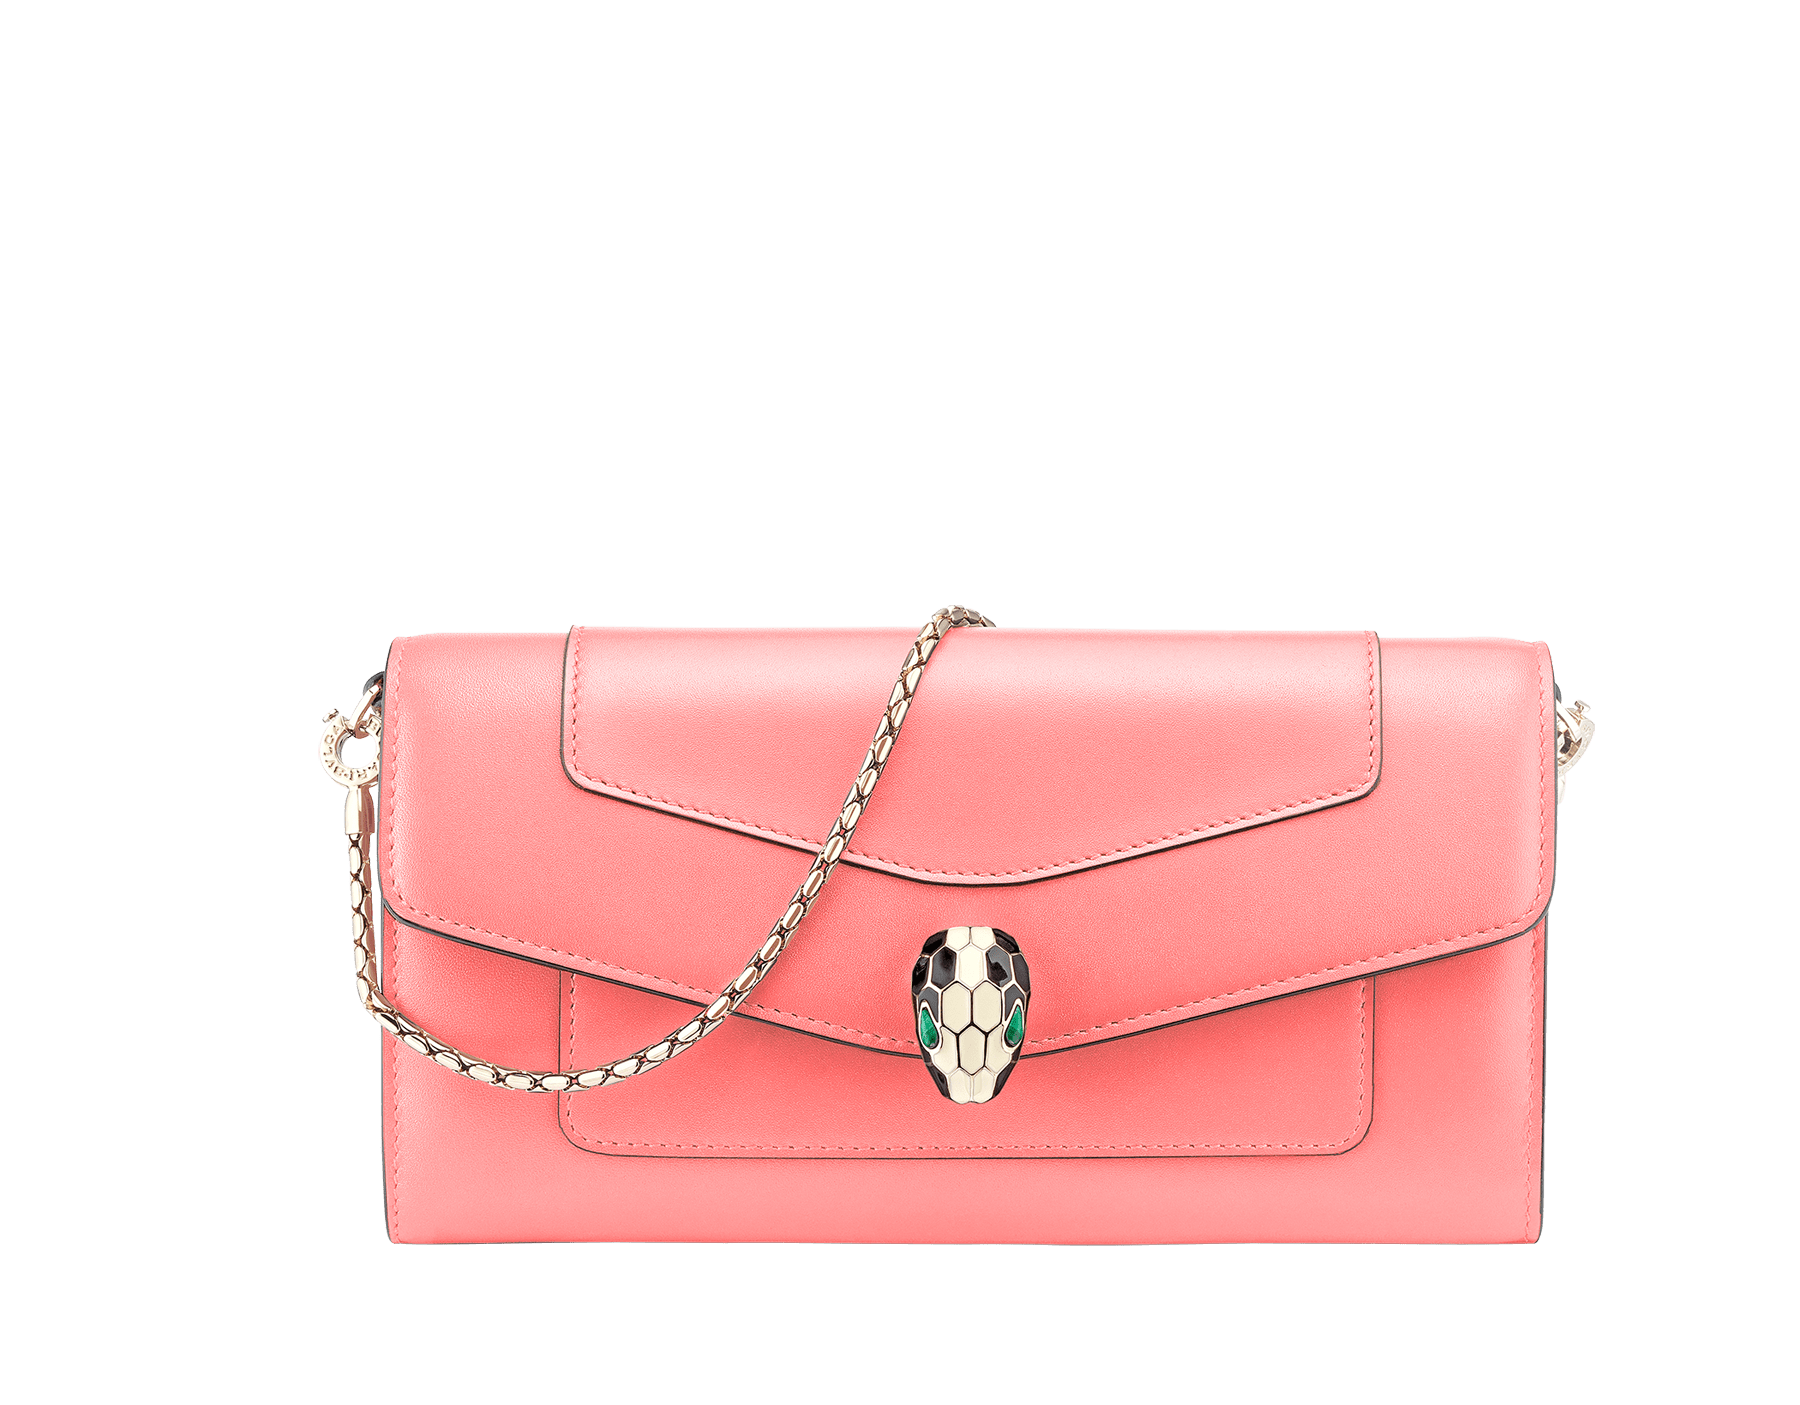 Serpenti Forever wallet pouch in silky coral and flamingo quartz calf leather. Iconic snakehead charm in black and white enamel with green malachite eyes. 288837 image 1